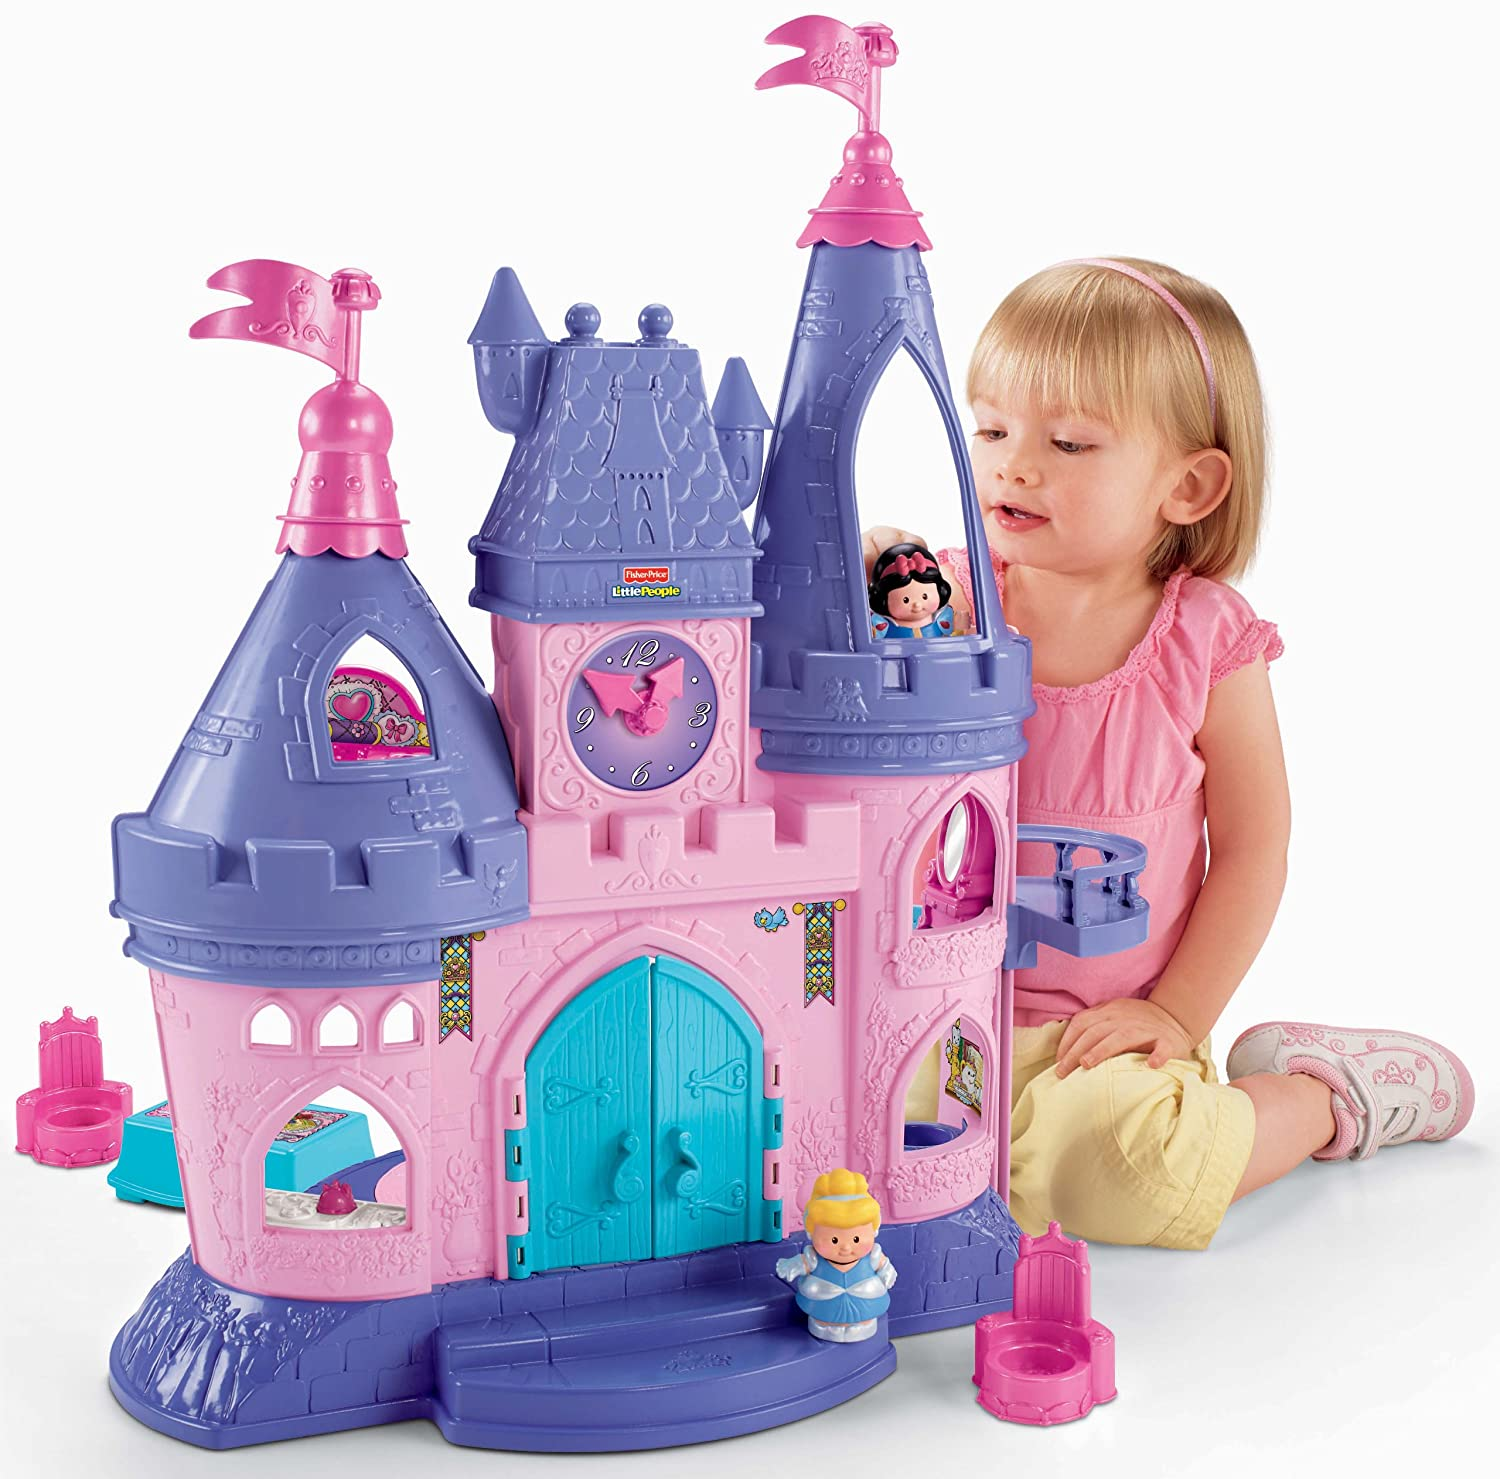 Toys For Girls Age 5 7 : Christmas gifts hot toys for toddler girls ages